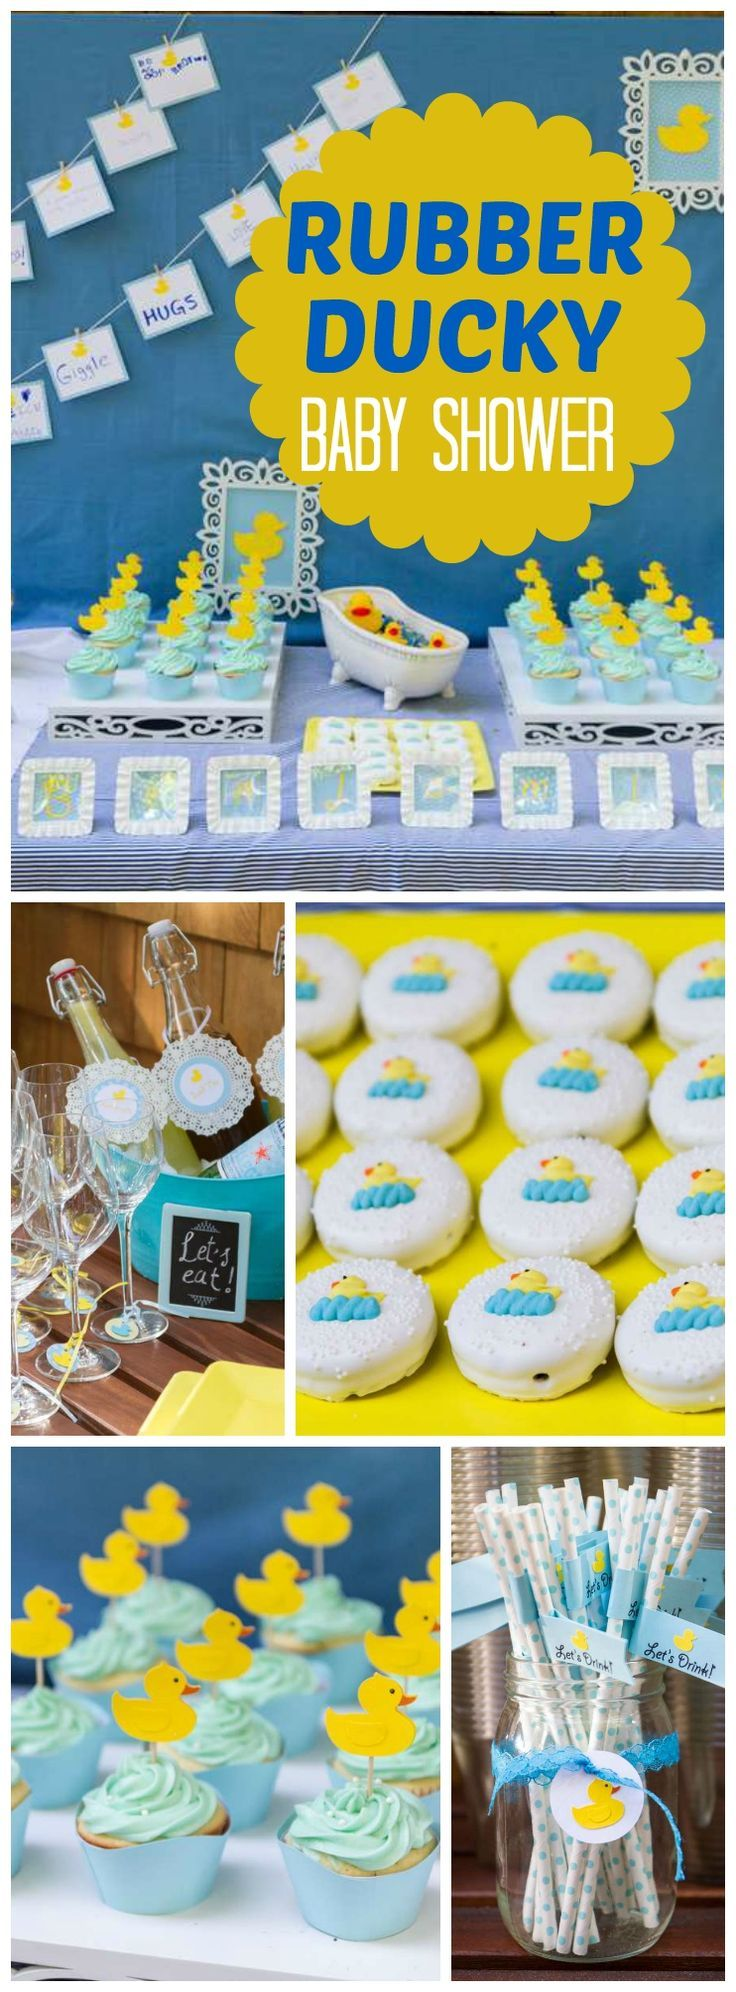 82 best images about green and yellow baby showers on for Rubber ducky bathroom ideas